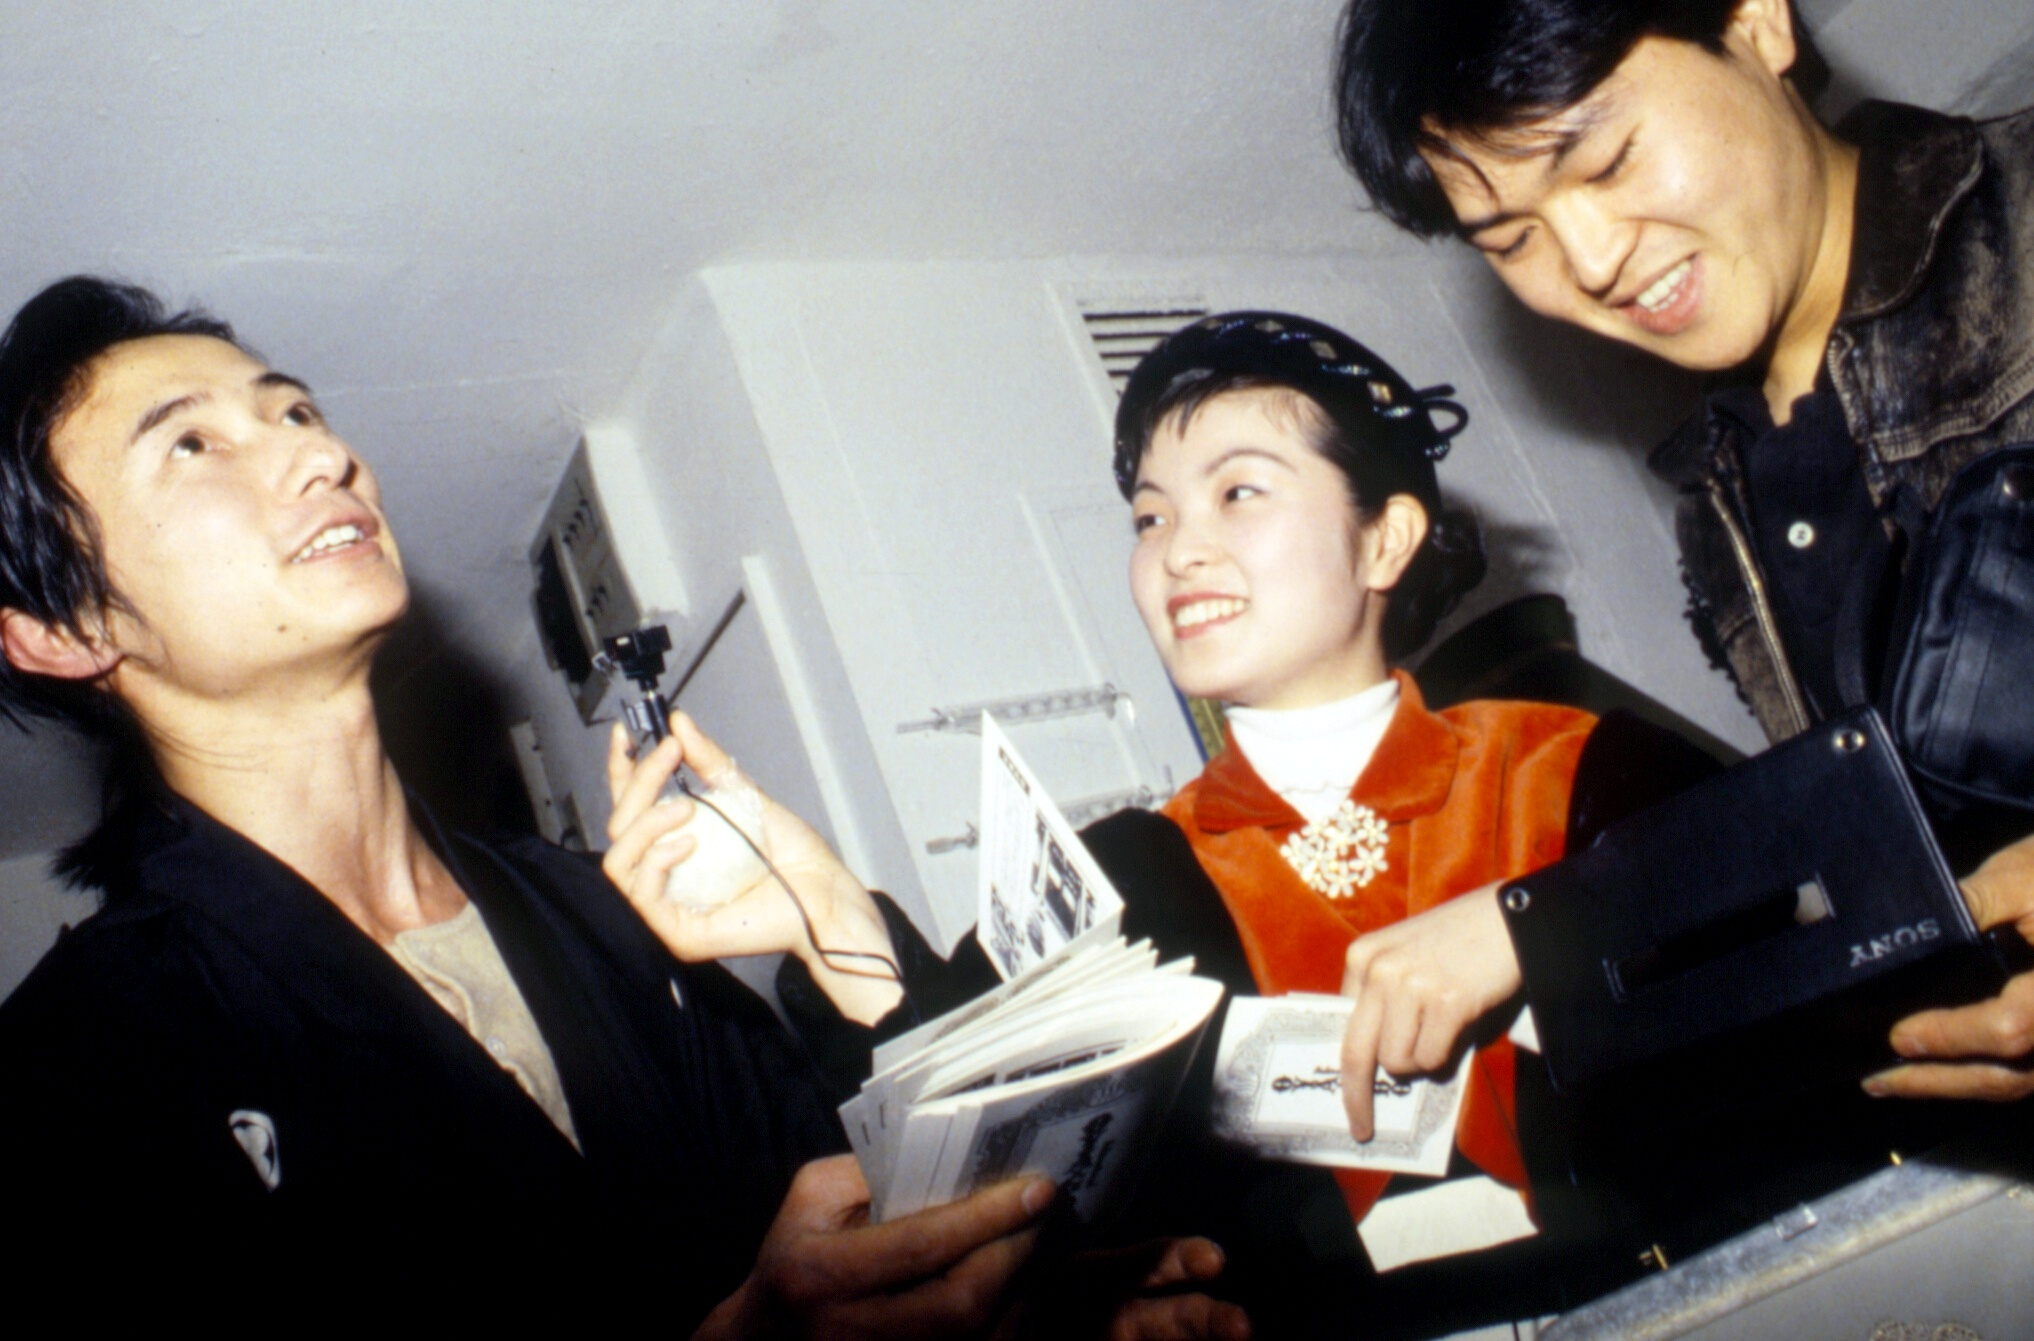 Numata Genqui (left) interviewed at gallery reception, Tokyo ca. 1988